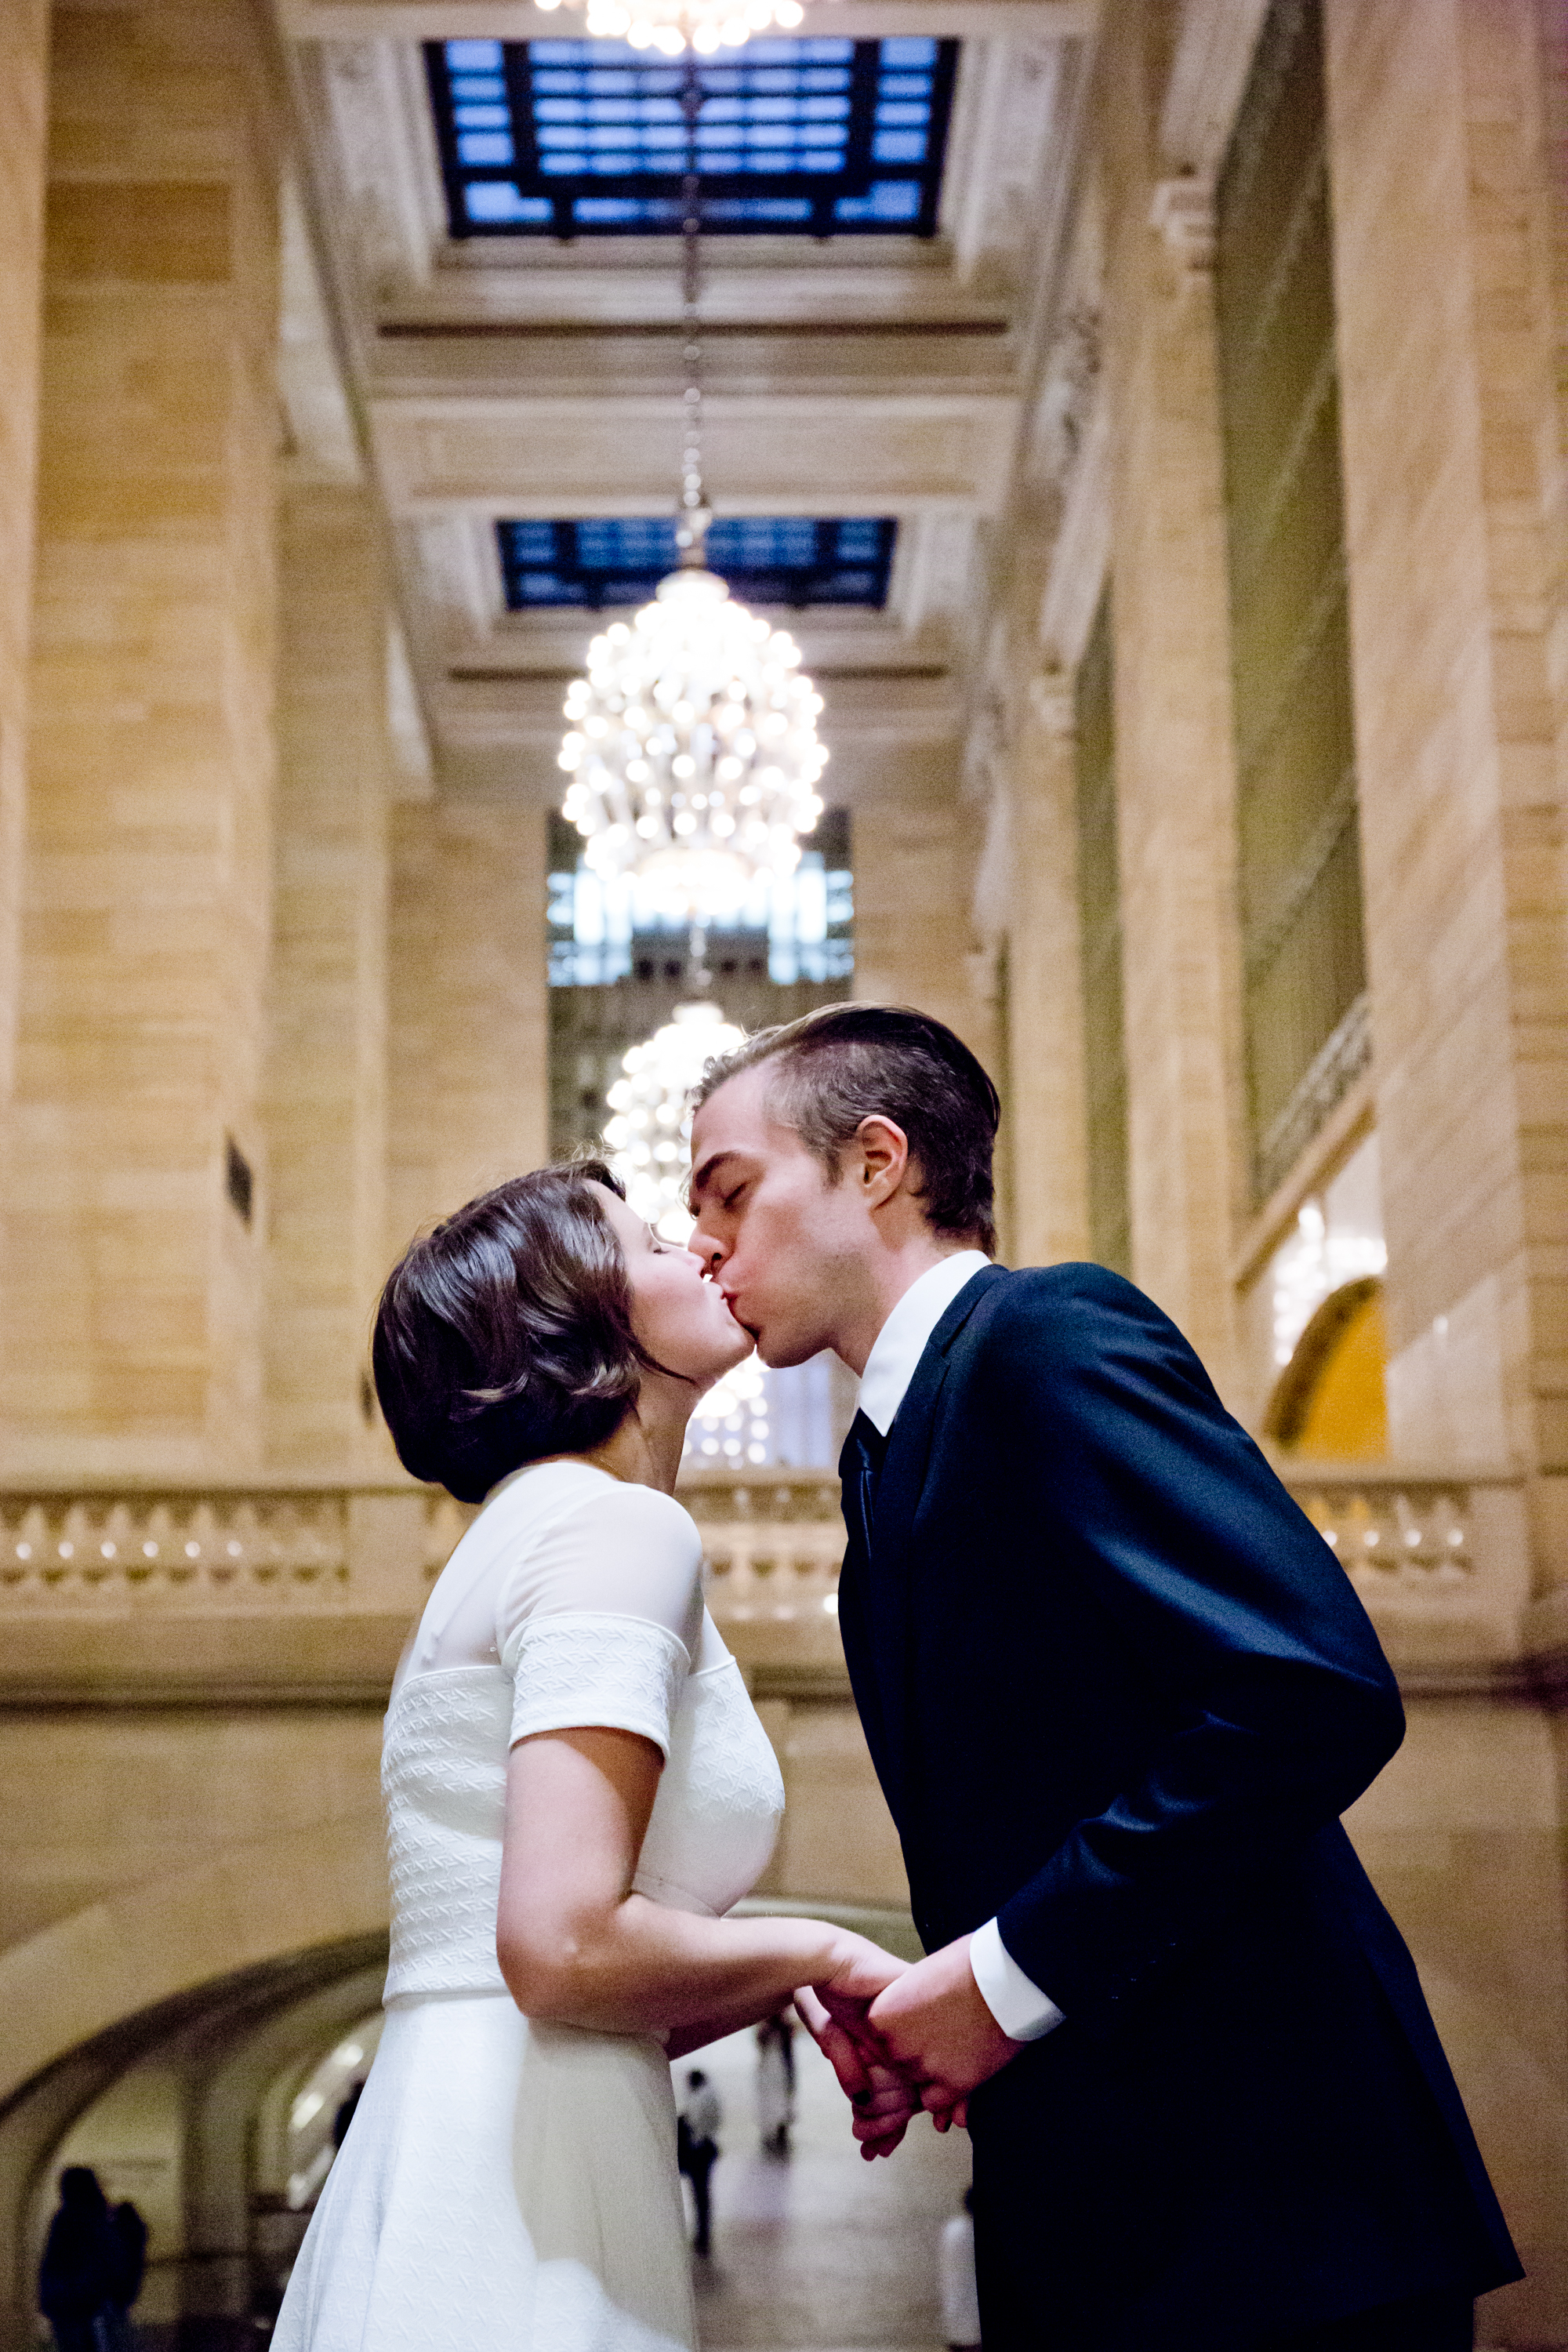 125_CarlyGaebe_SteadfastStudio_WeddingPhotography_NewYorkCity_Manhattan_GrandCentralStation_Bride_Groom_Kiss.jpg